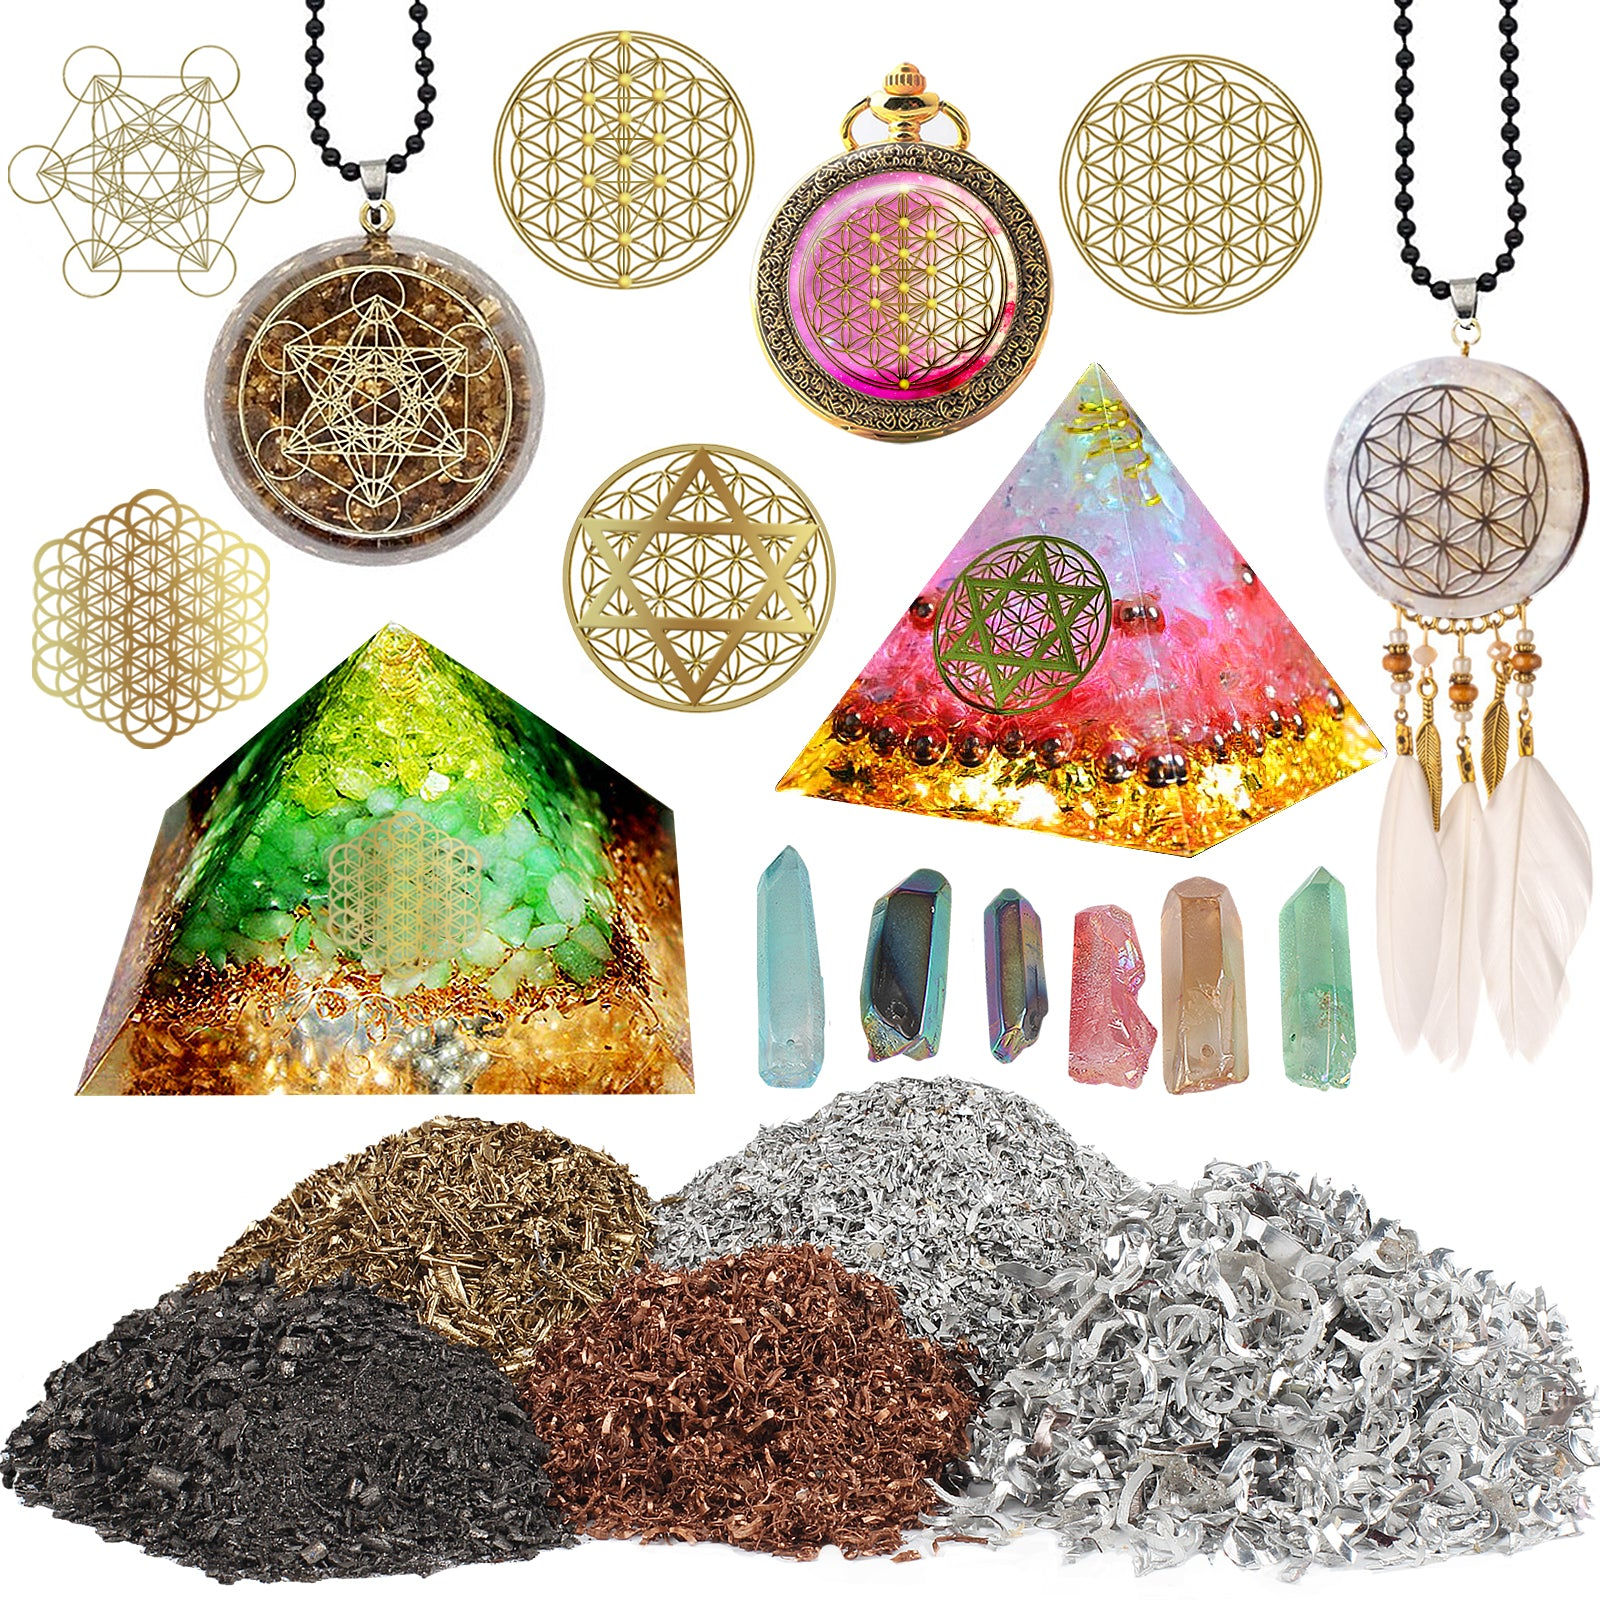 Orgone Resin Fillers-5 Metal Shavings|5 Symbol Stickers|6 Colored Crystals